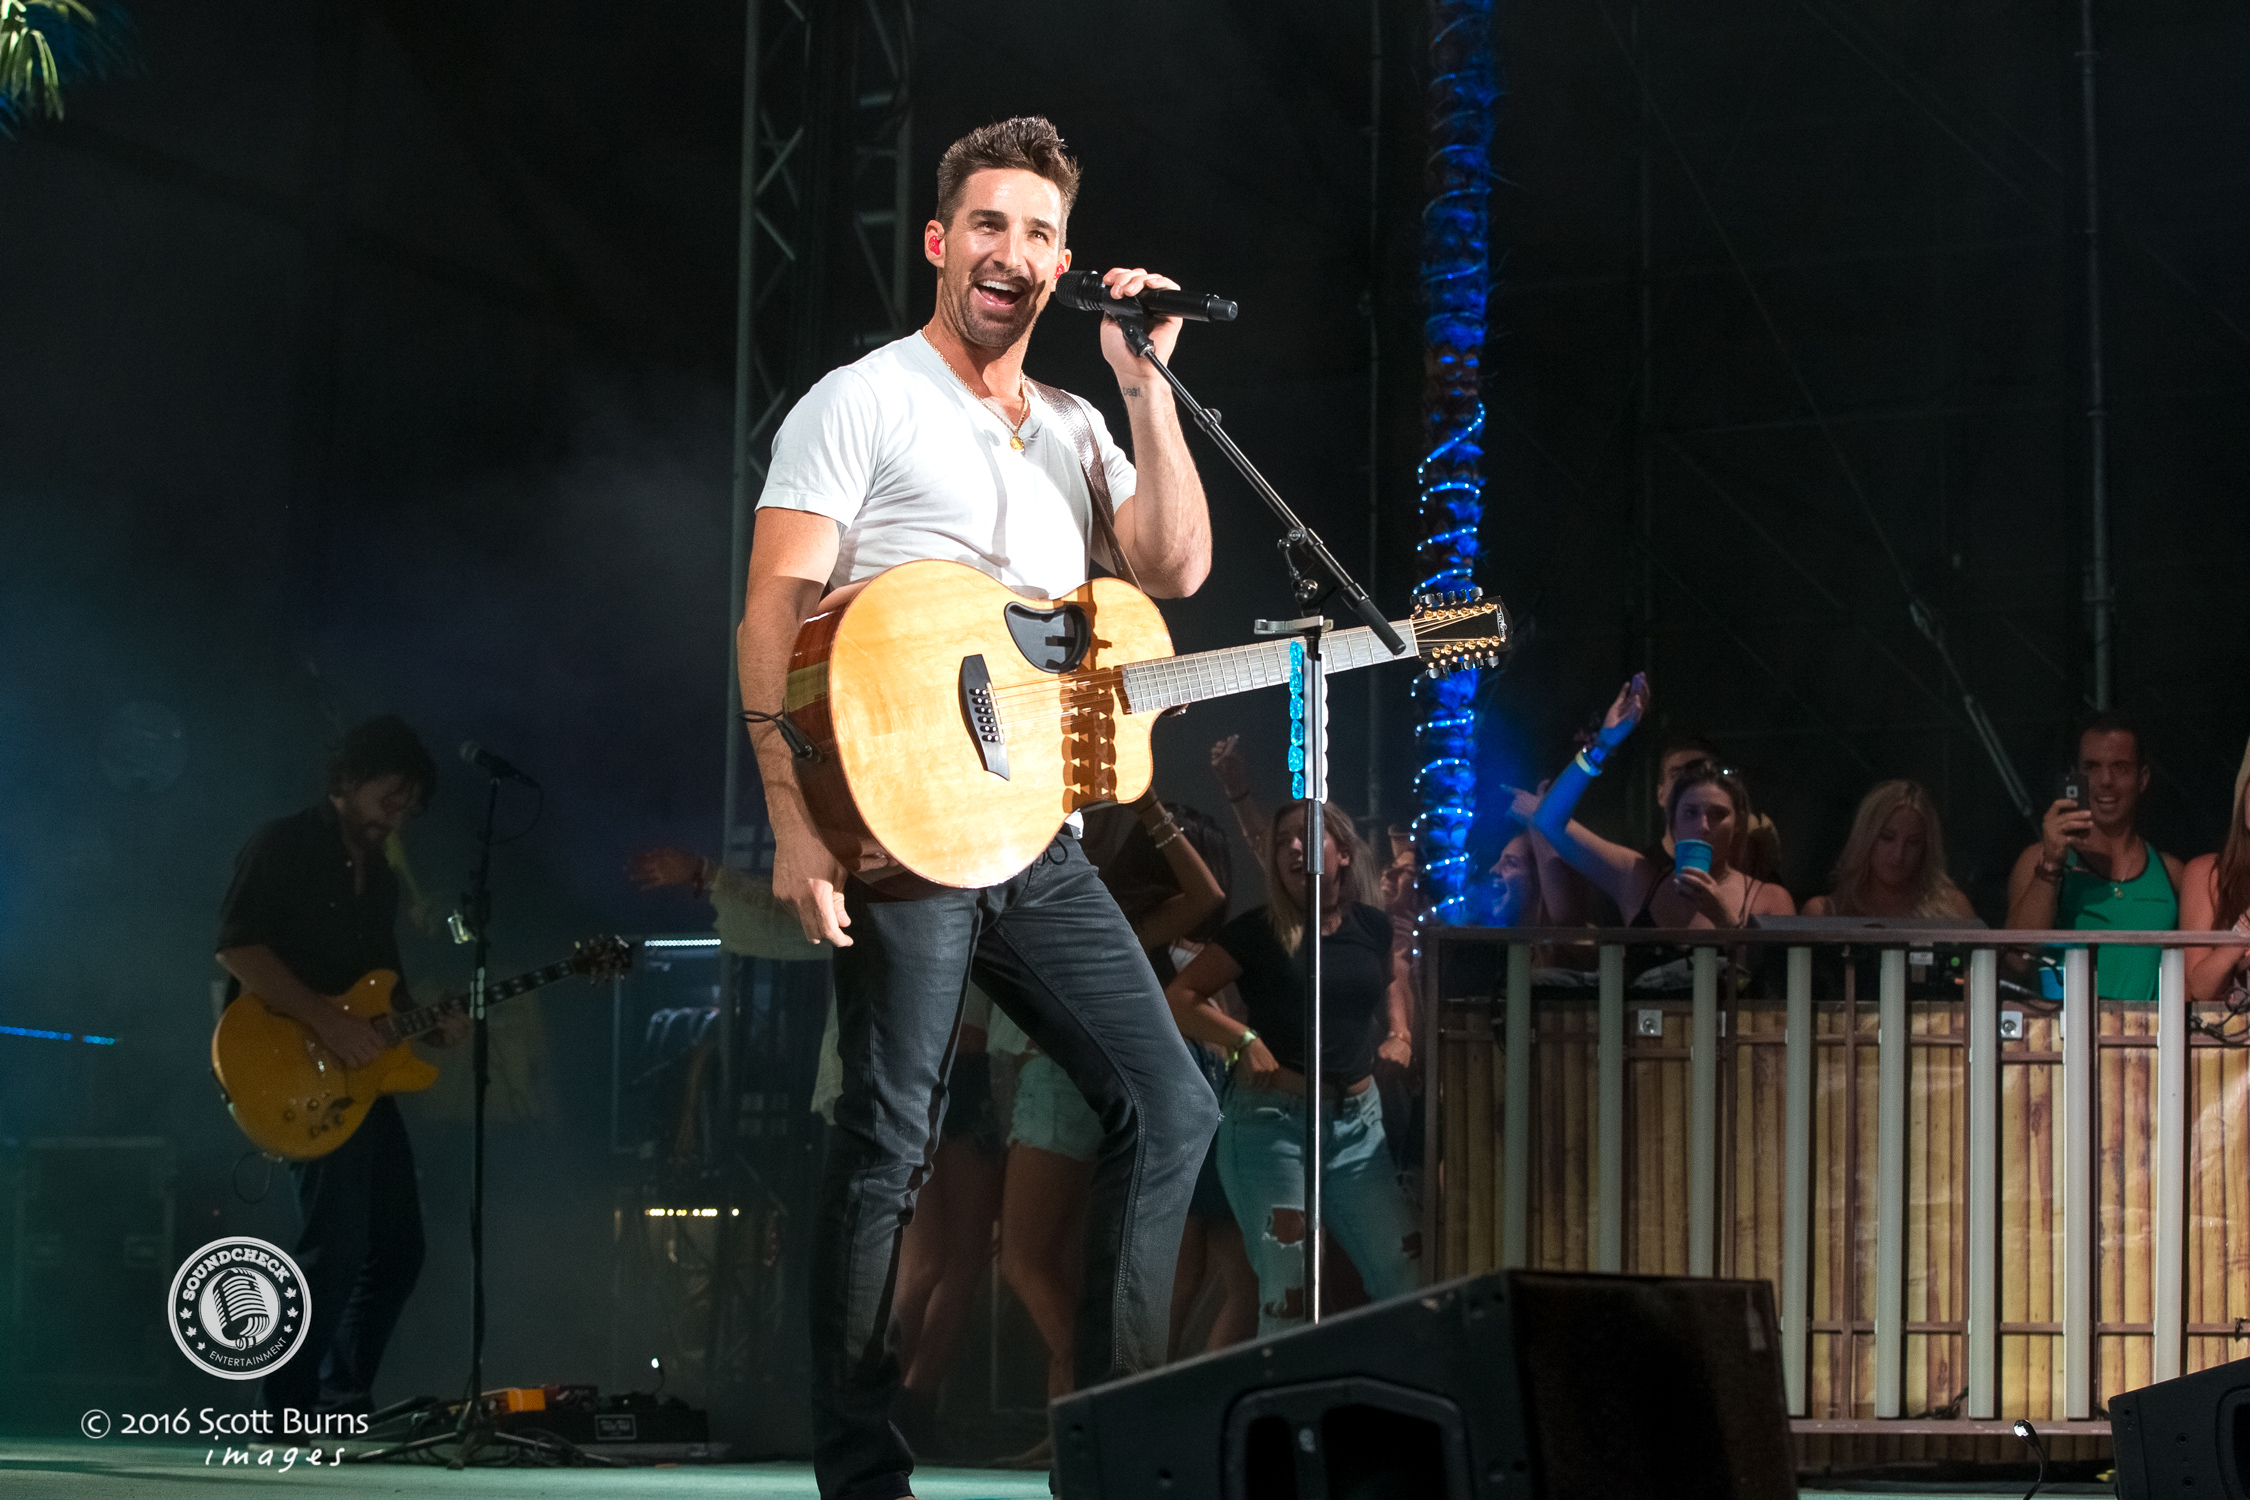 Jake Owen List Of Songs Delightful rbc bluesfest 2017 unveils world class lineup (updated lineup